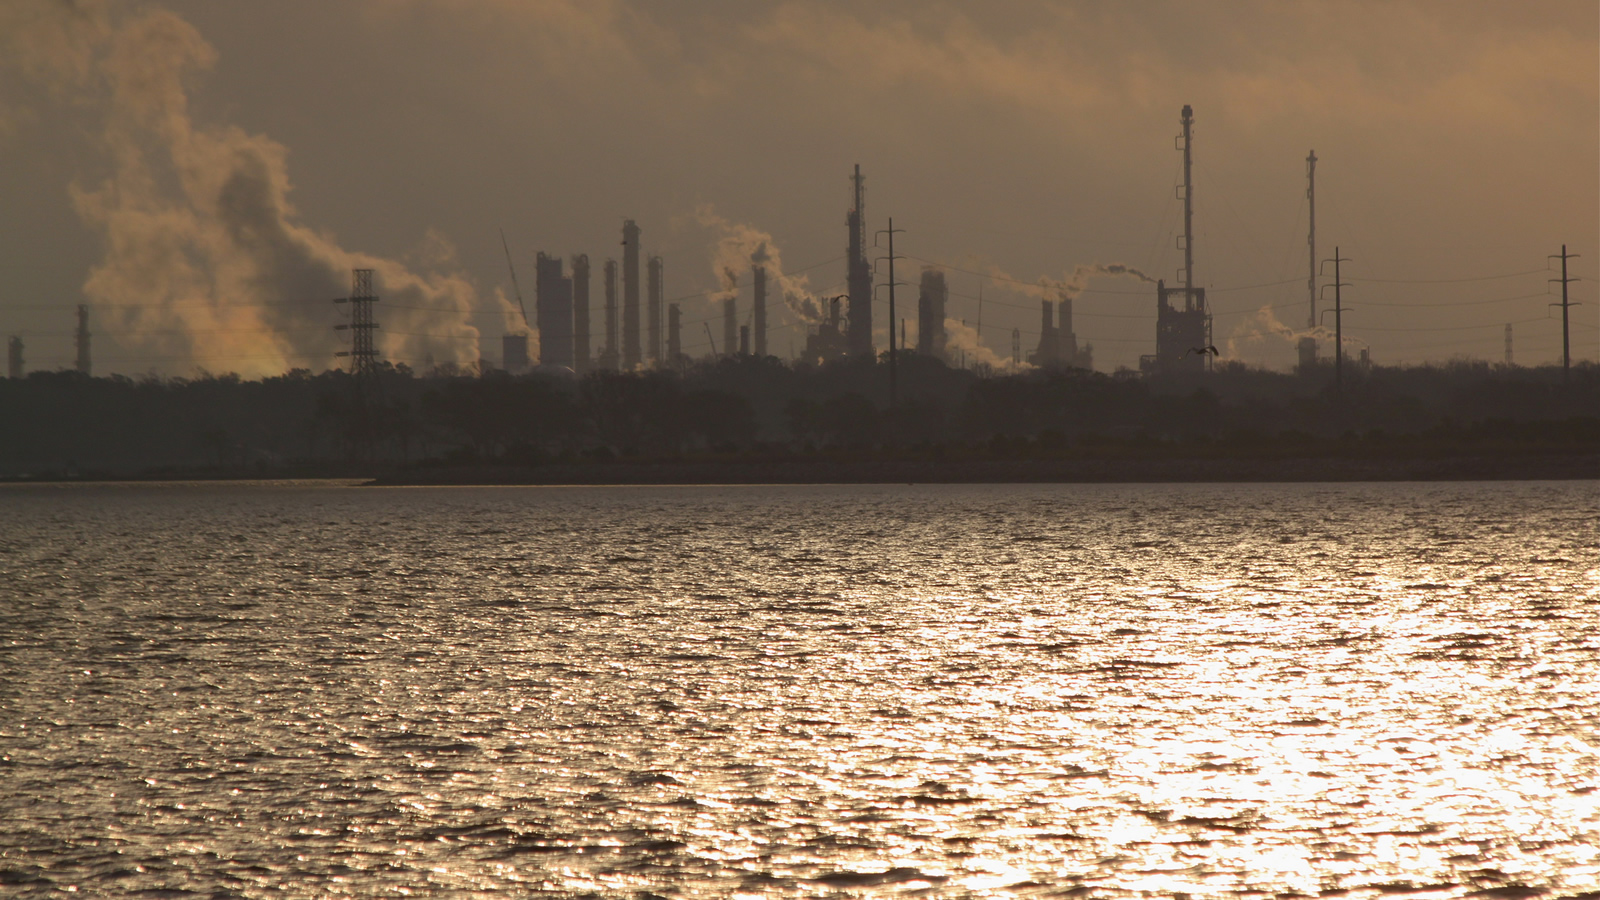 <h4>v. EXXONMOBIL</h4><h5>After our sister group Environment Texas filed suit, a federal judge ordered Exxon to pay a $19.95 million fine for committing 16,386 days of violation of the Clean Air Act at the company's Baytown, Texas, refinery and chemical plant complex.</h5><em>Roy Luck via Flickr, CC-BY-2.0</em>